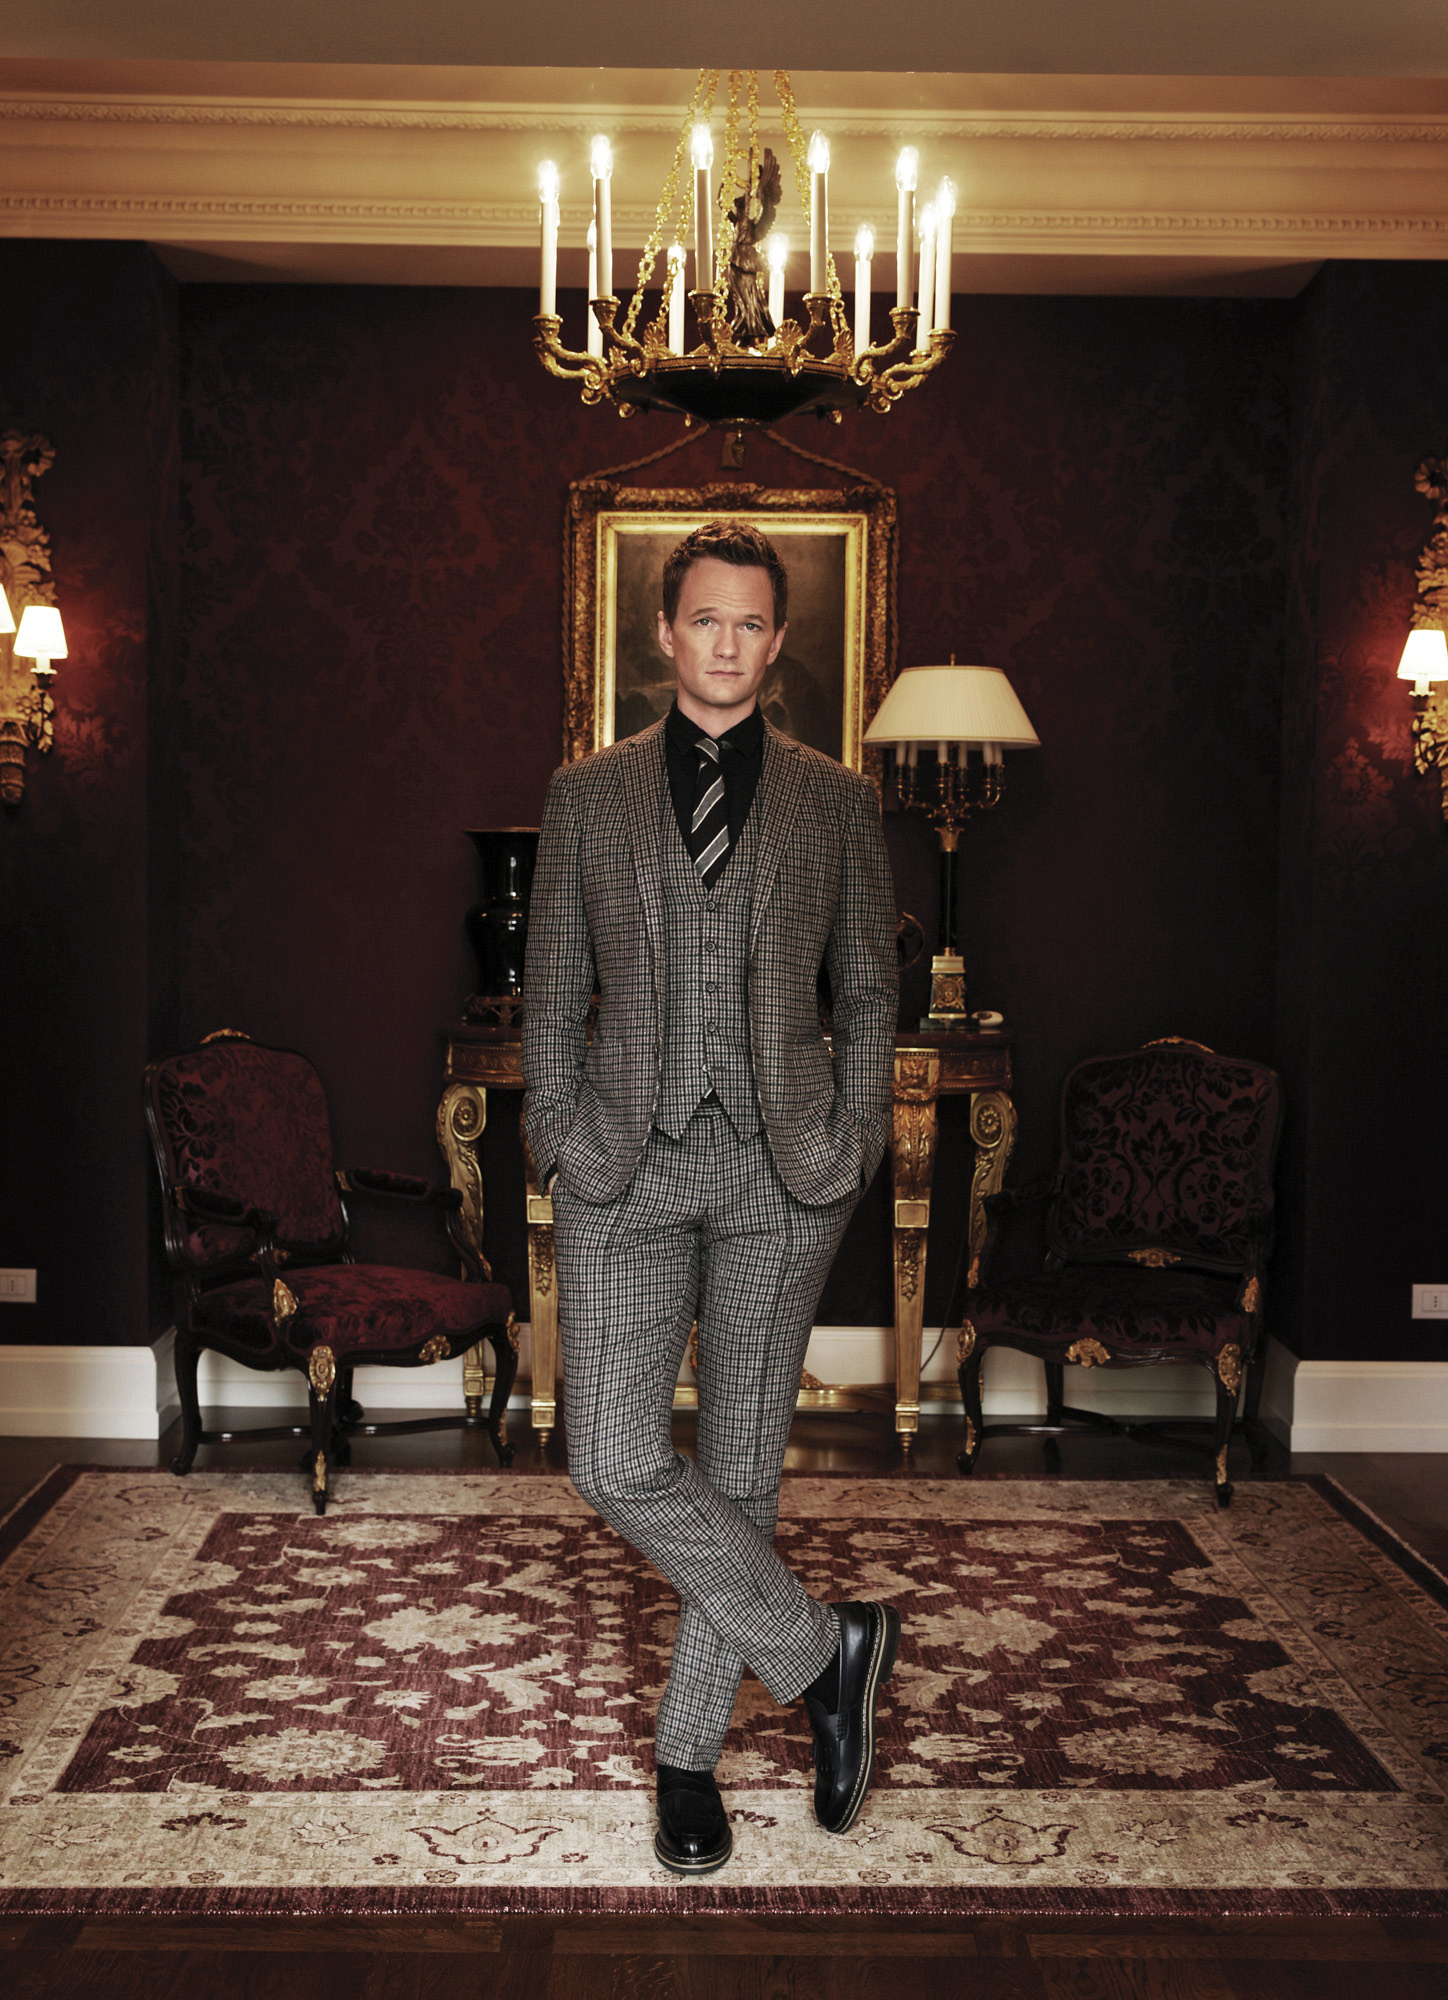 Neil Patrick Harris in the Presidential Suite